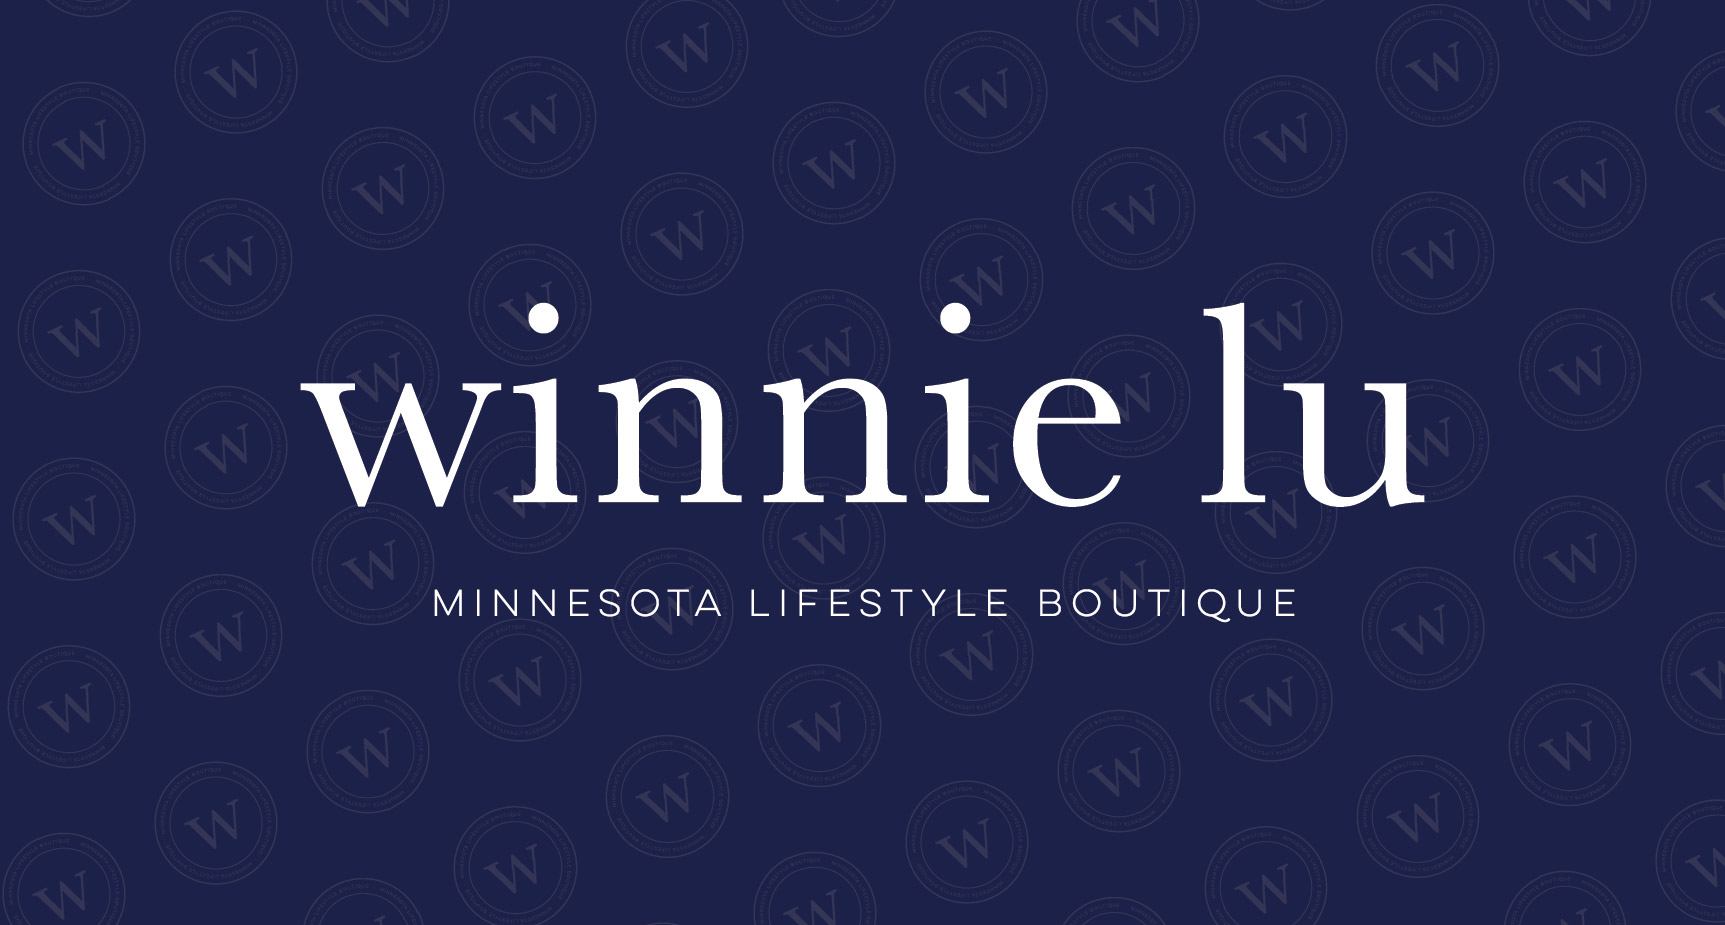 Winnie Lu Minnesota Lifestyle Boutique located in Victoria, MN  |  Logo and Visual Branding Design by AllieMarie Design